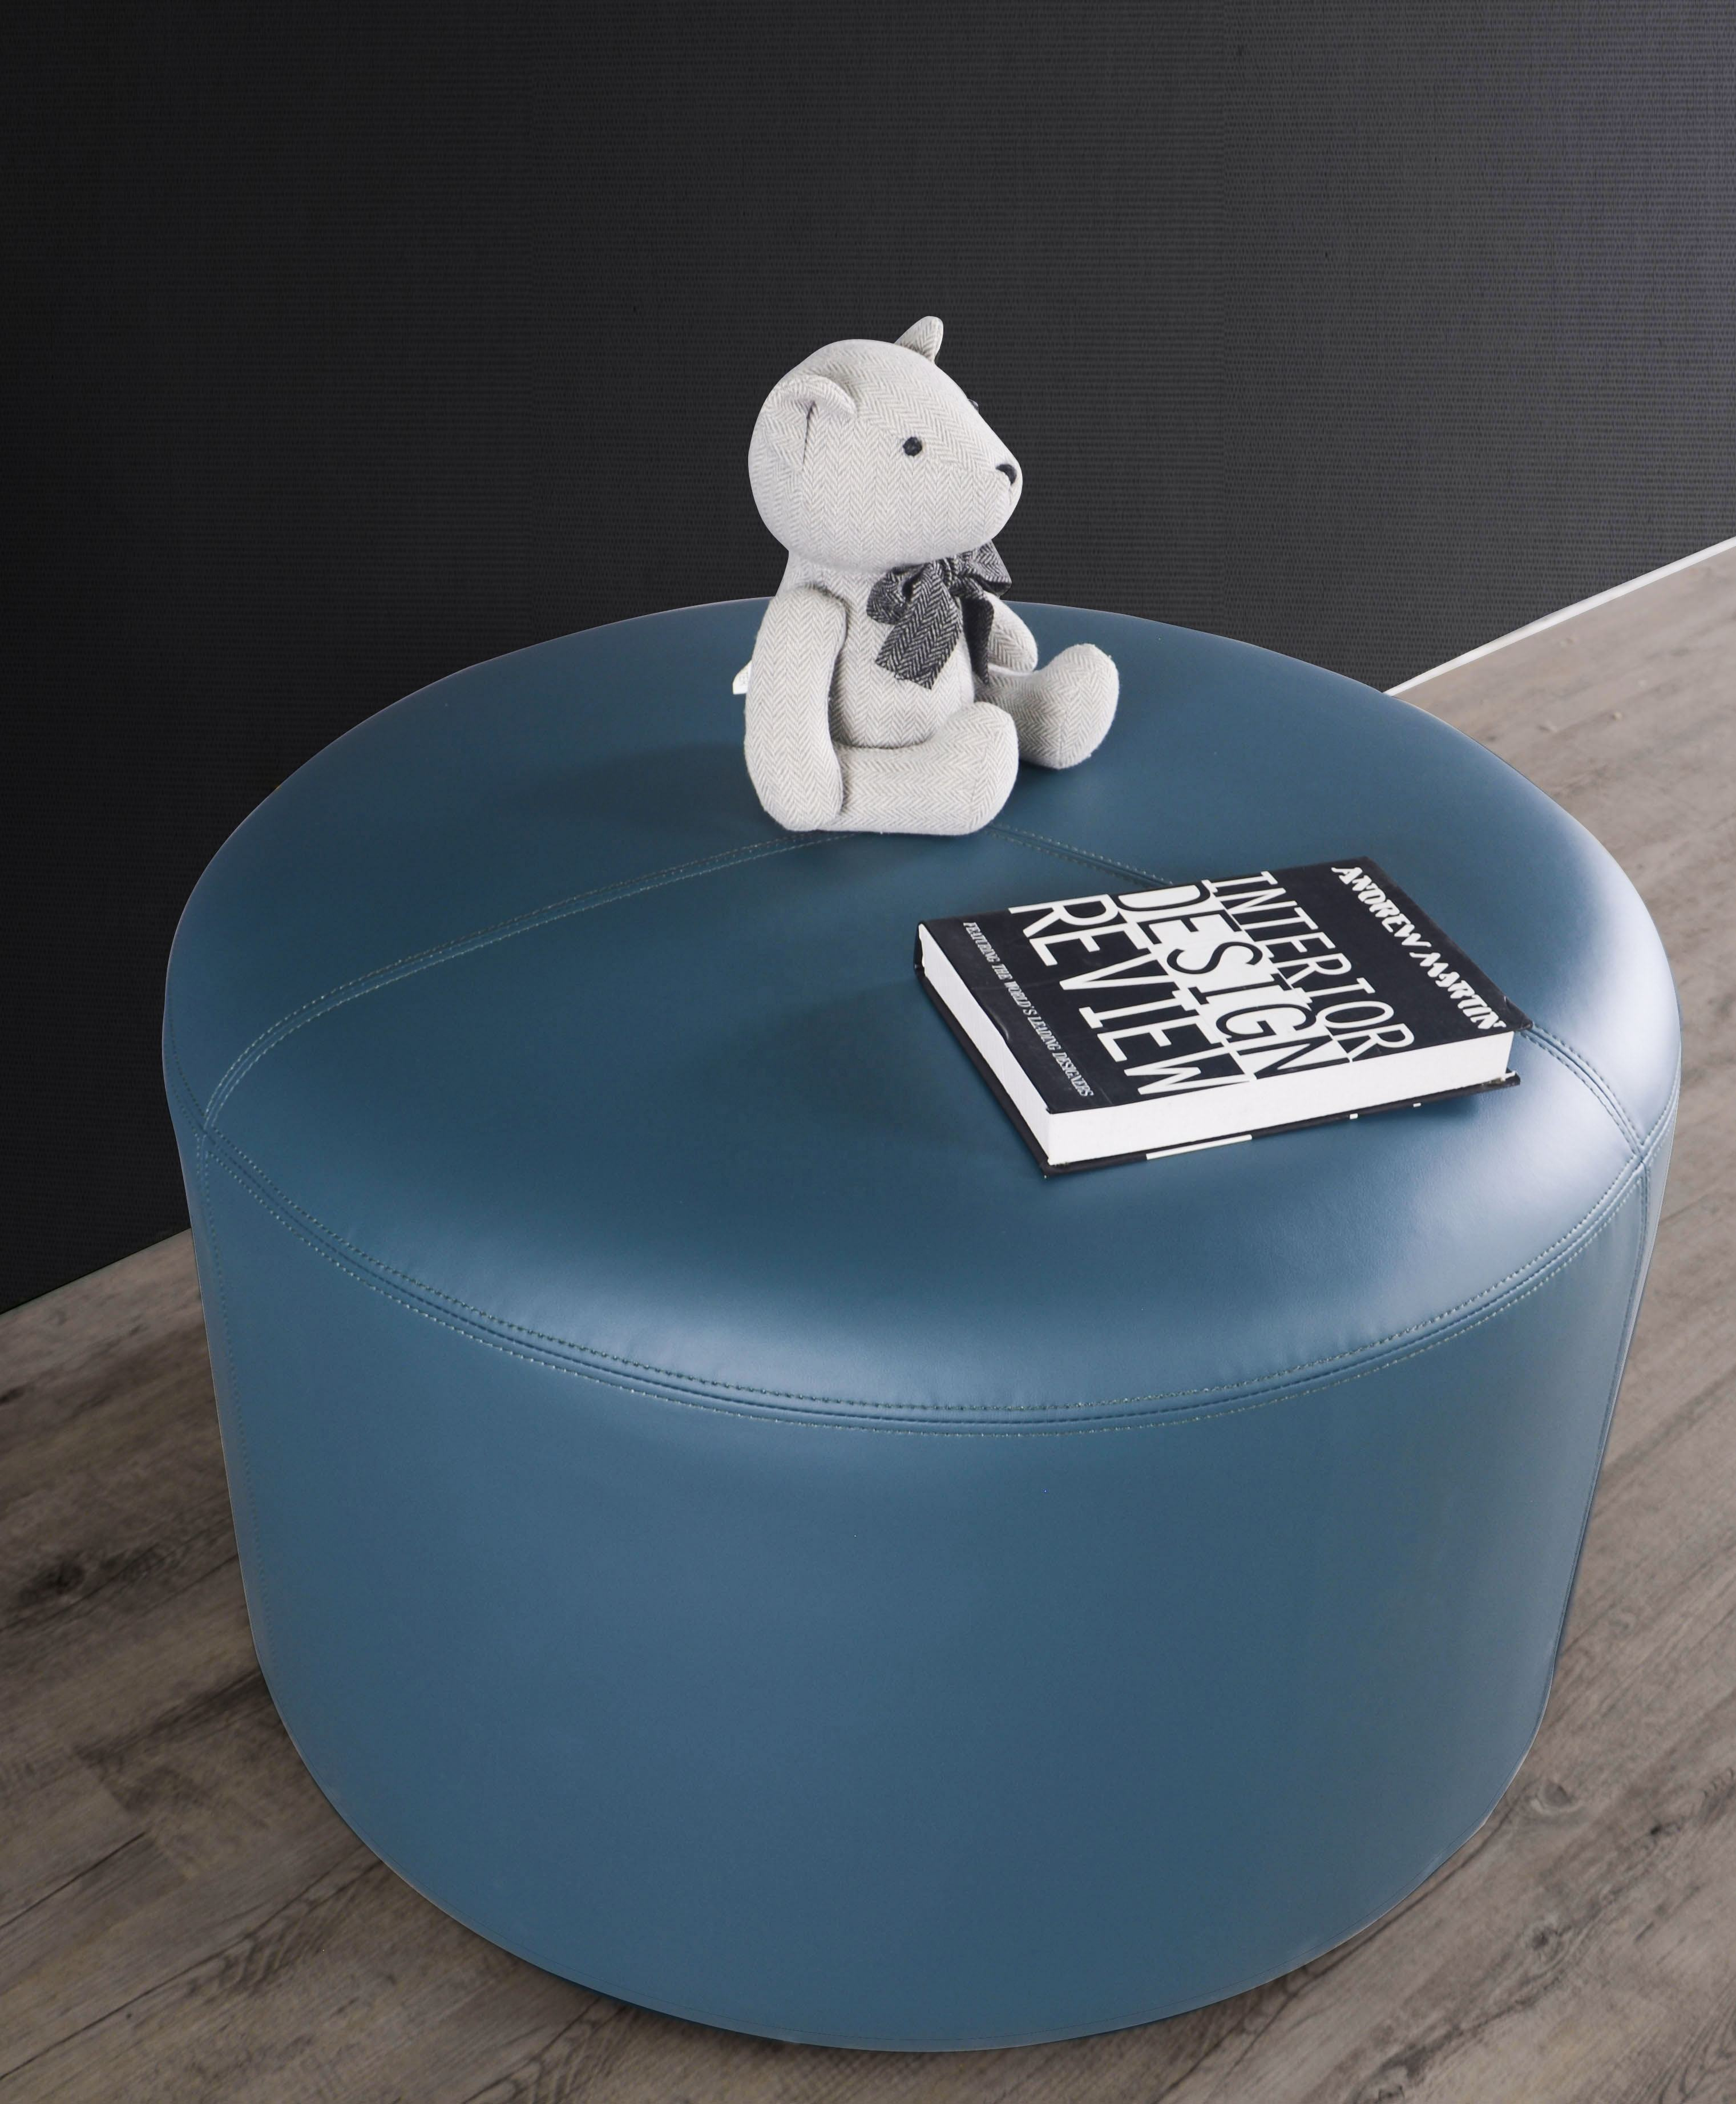 High Quality Leather Upholstered Round Footrest Living Room Blue Ottoman Stool